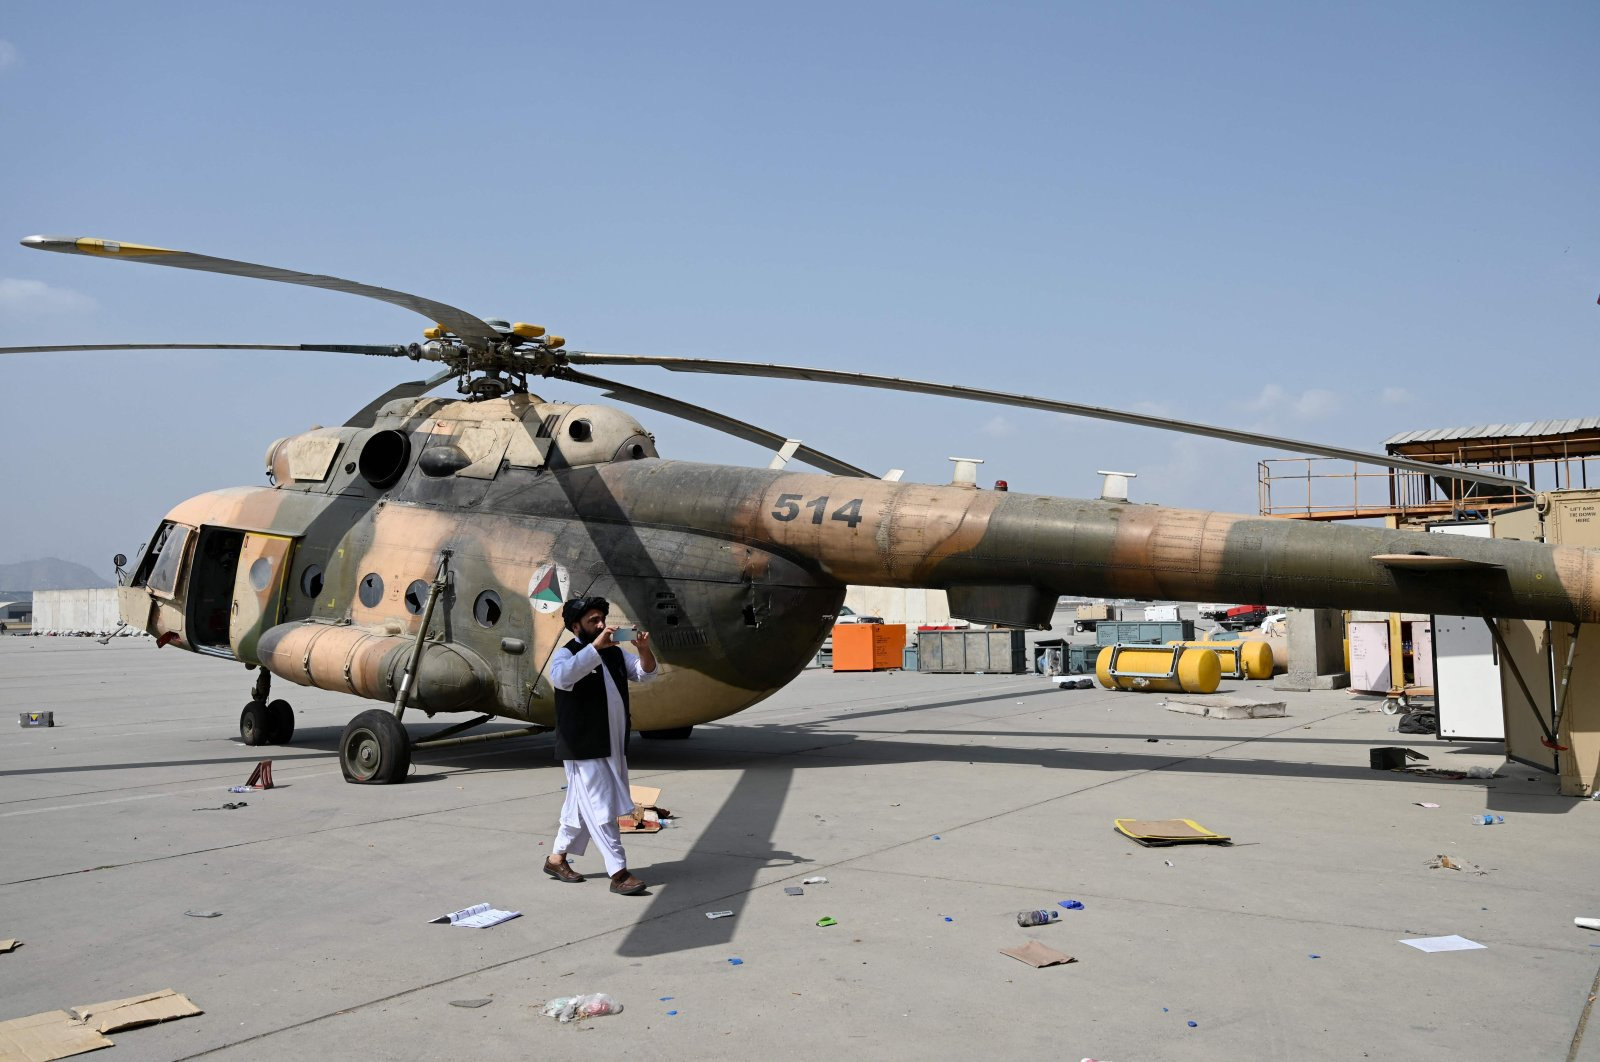 A Taliban member takes photos with a mobile phone at the airport in Kabul, Afghanistan, Aug. 31, 2021. (AFP Photo)